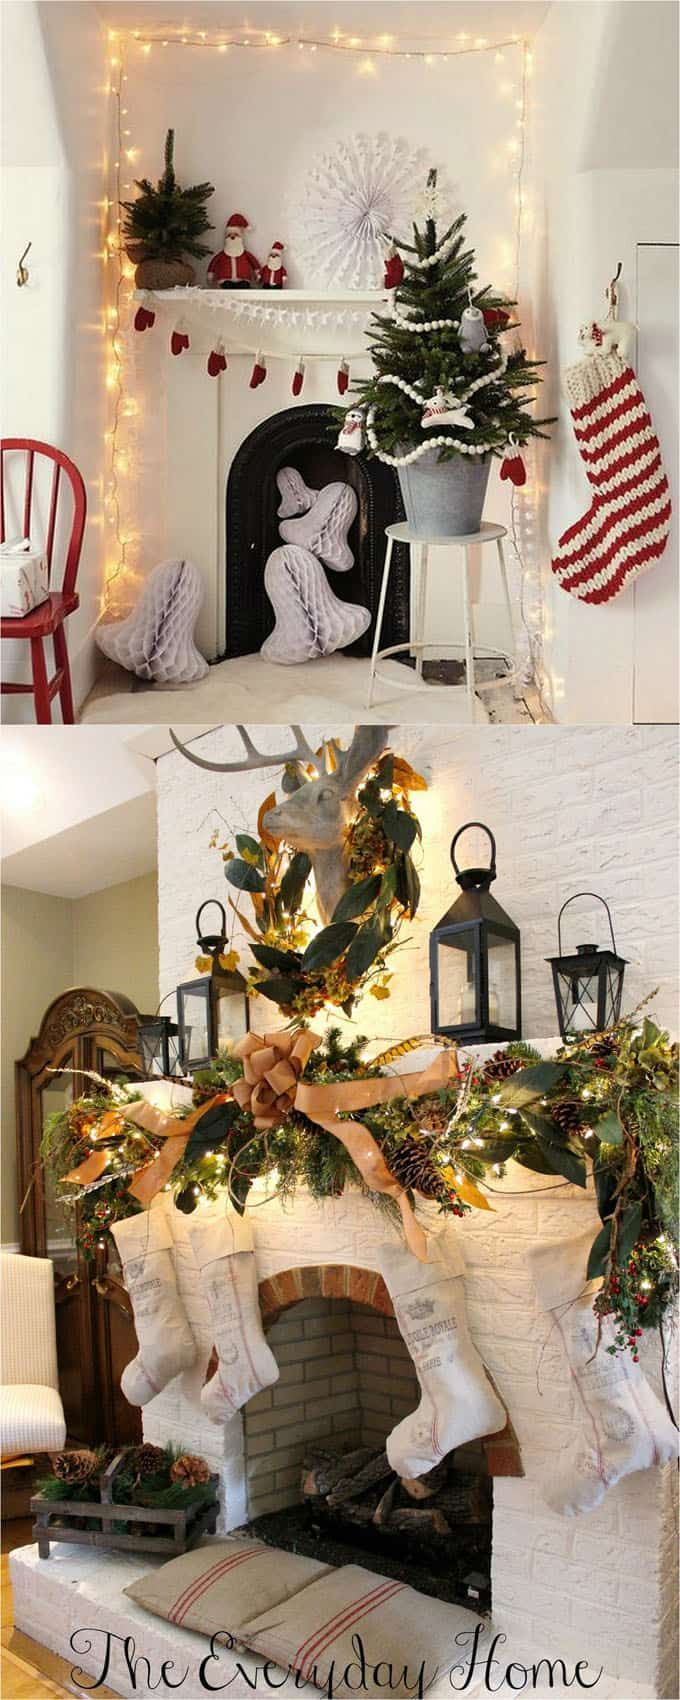 How to decorate your room for christmas without buying anything here are some of my tips christmasdecor christmasdecoration also rh pinterest